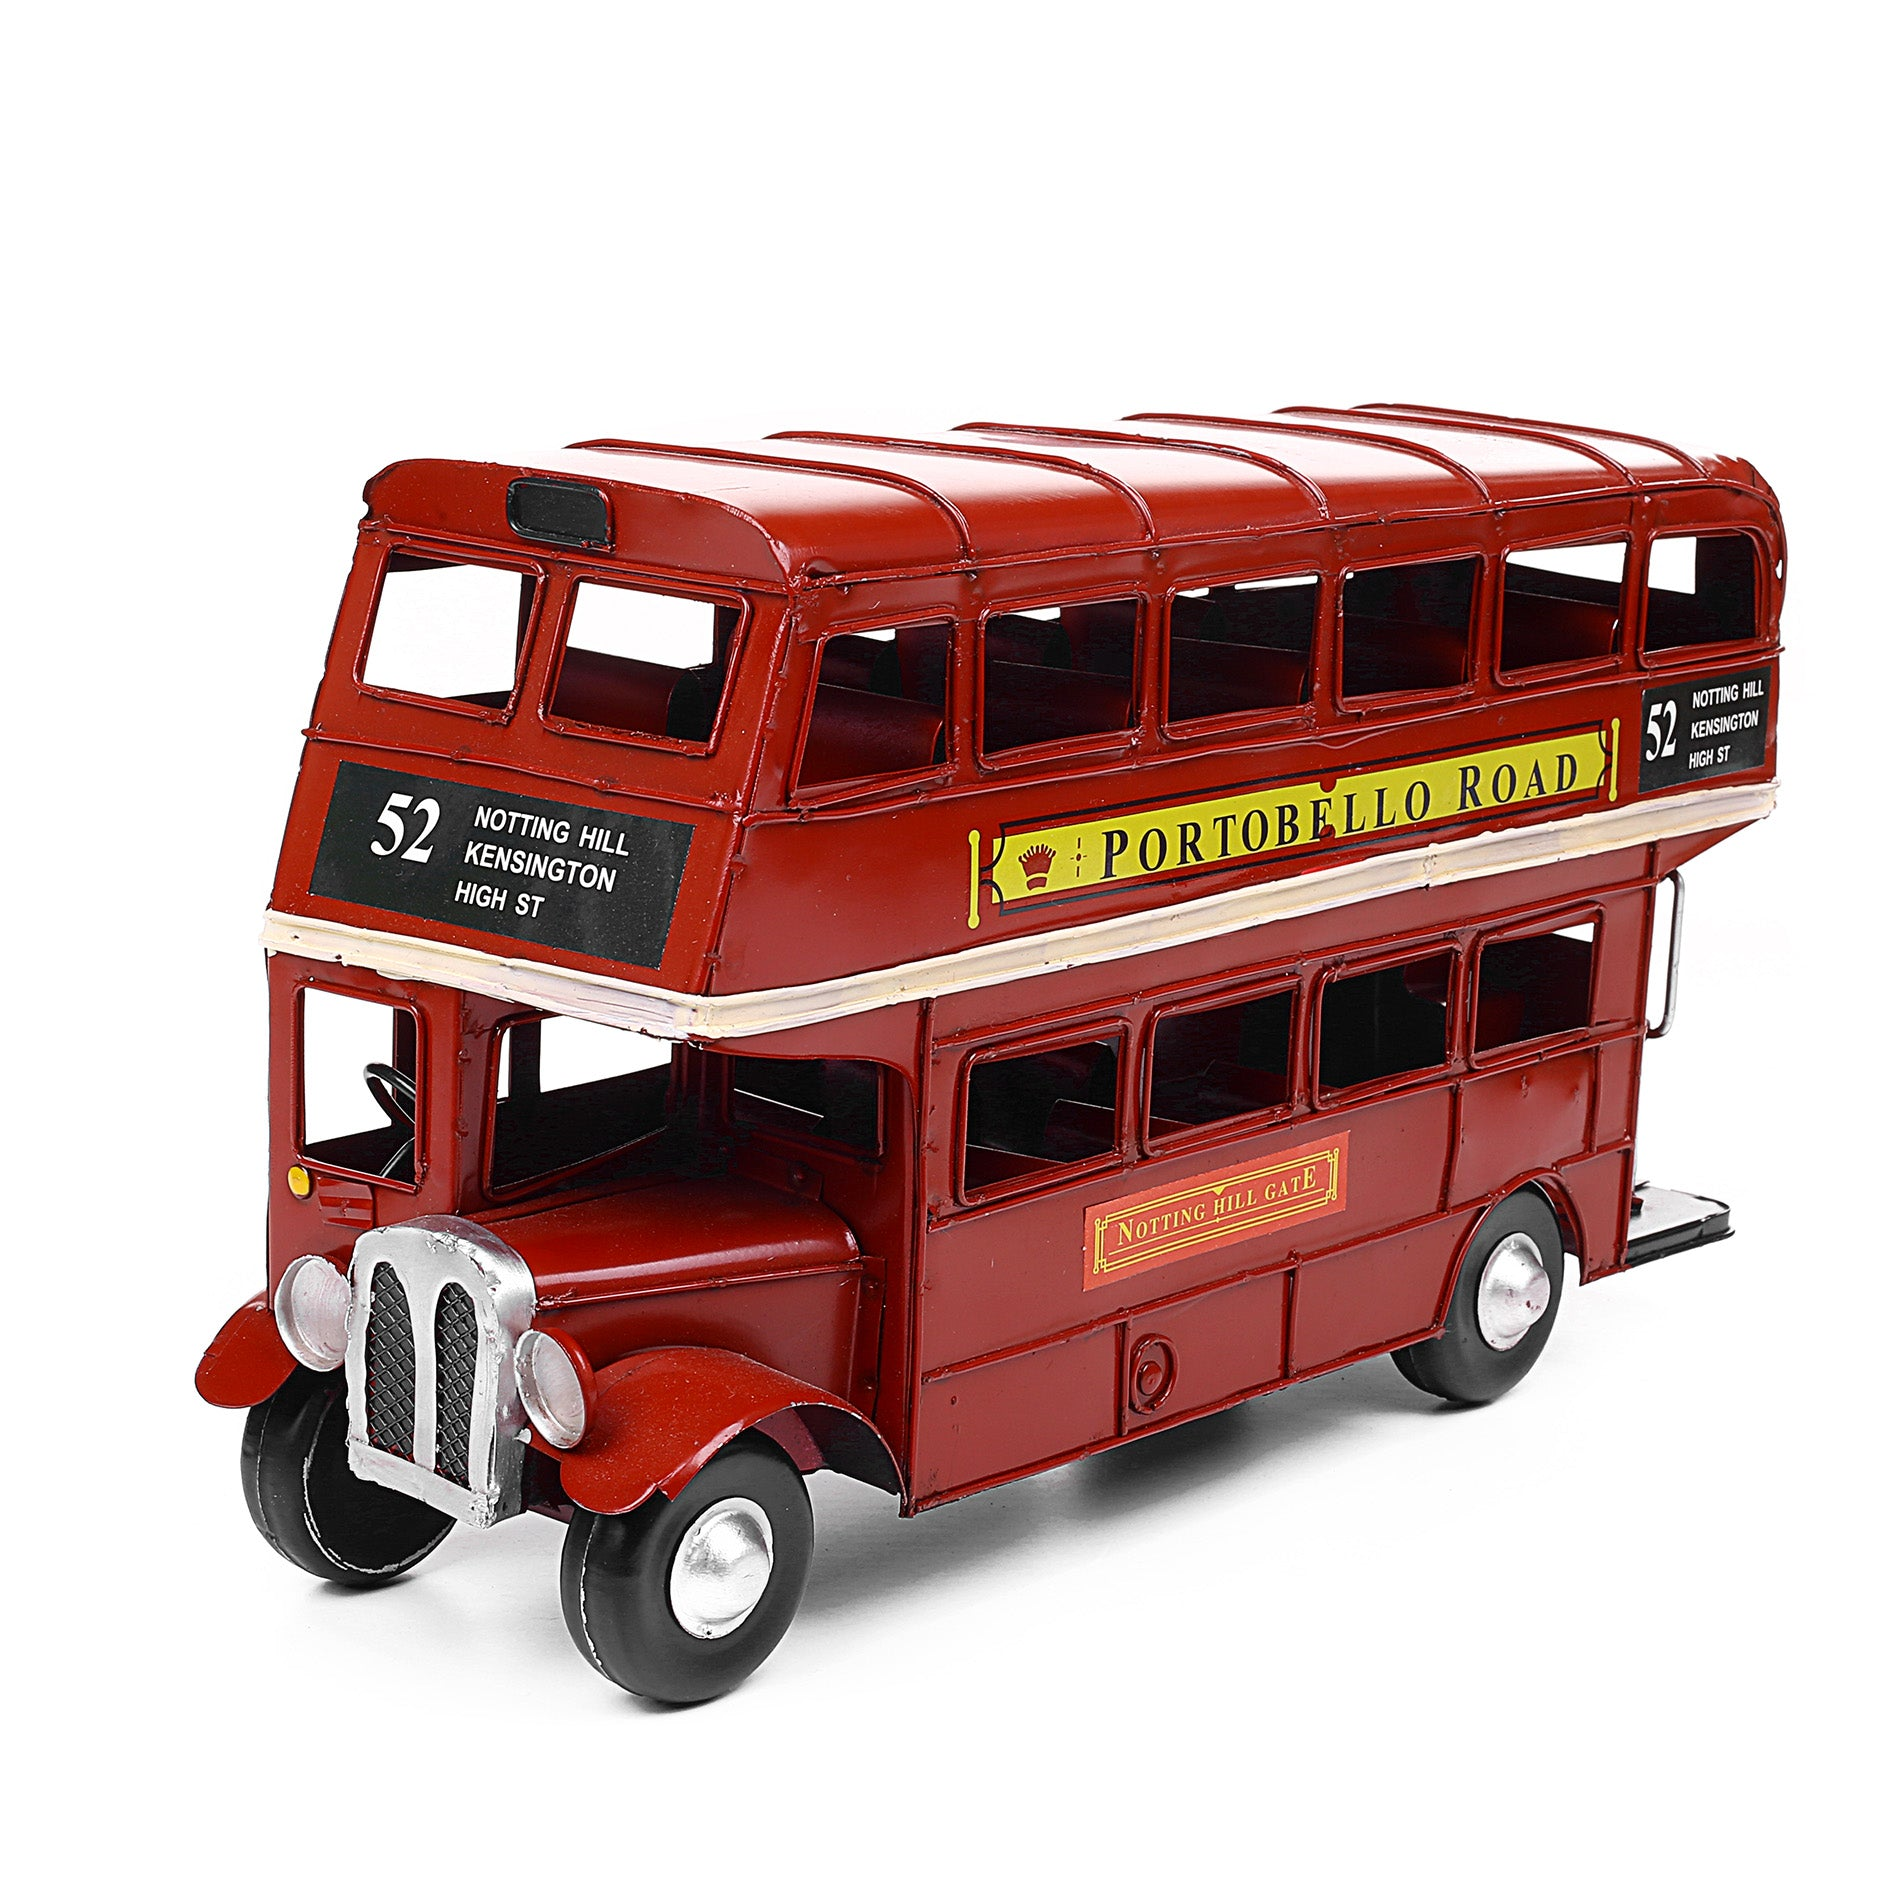 Decorative Metal Royal Design Bus